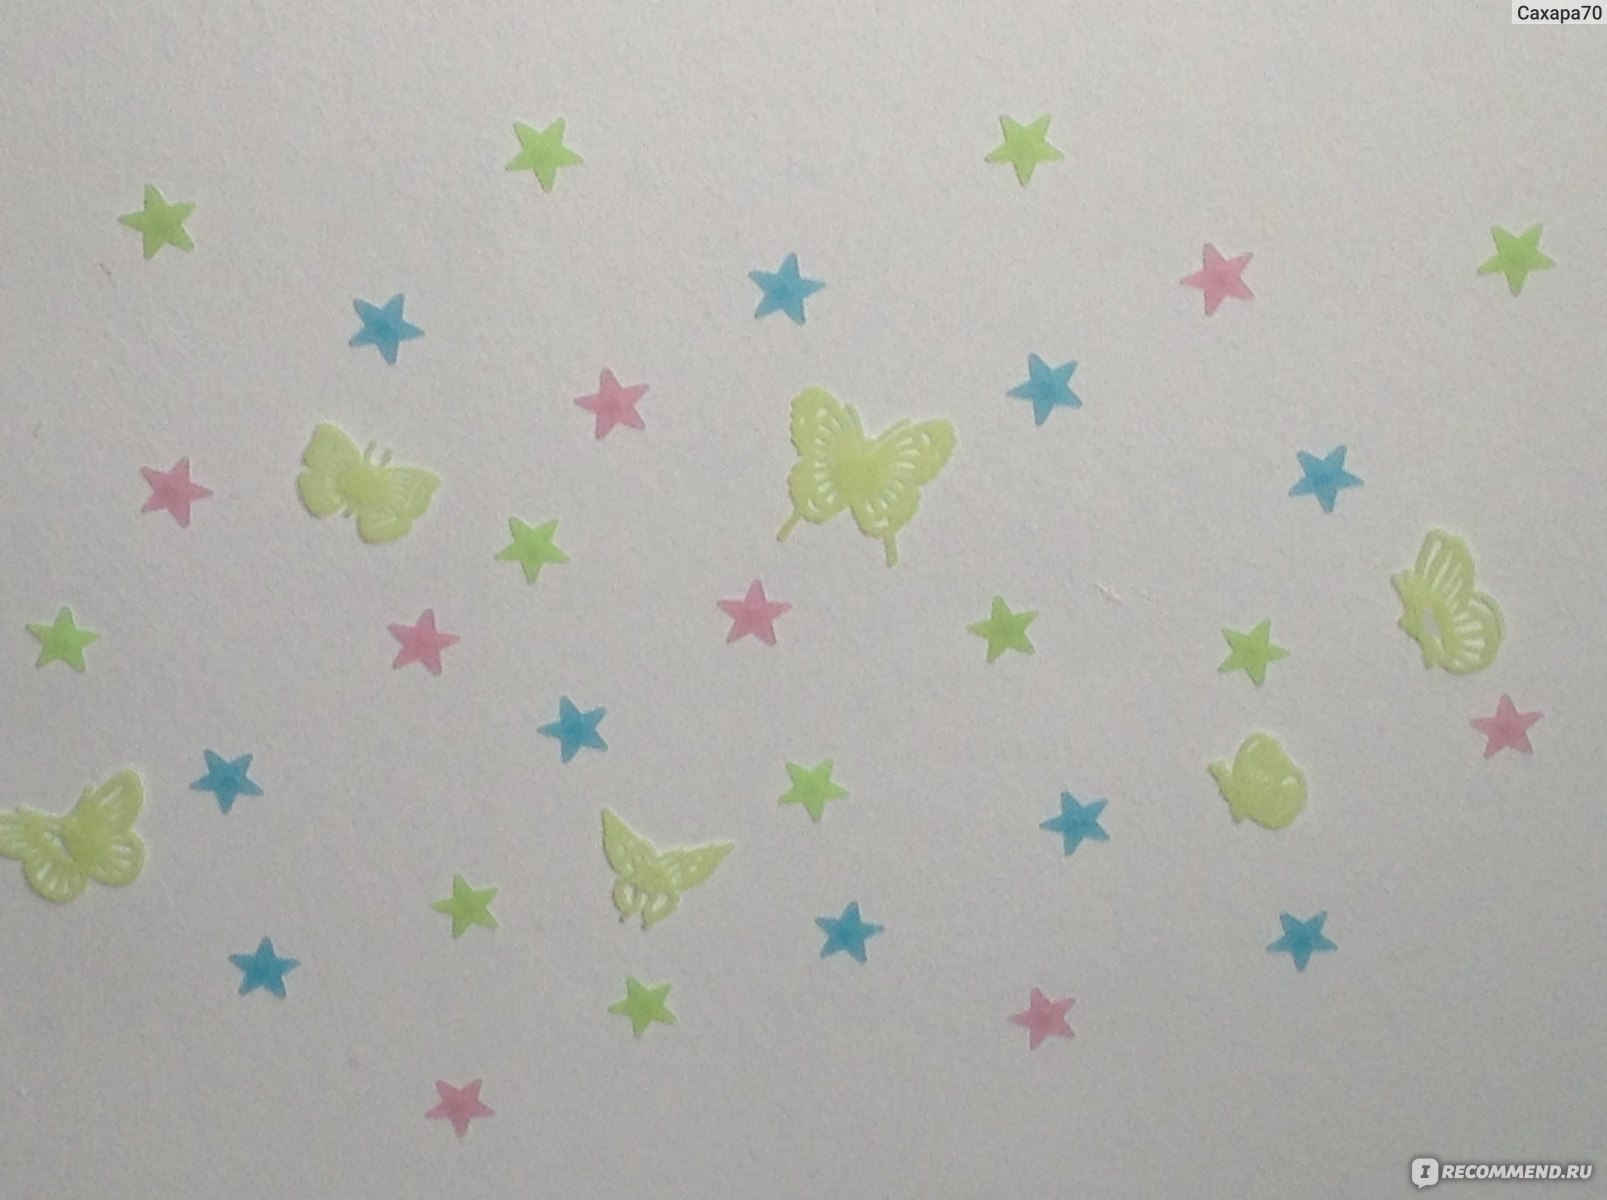 Aliexpress Wall Stickers Fluorescent Glow In The Dark Stars Glow